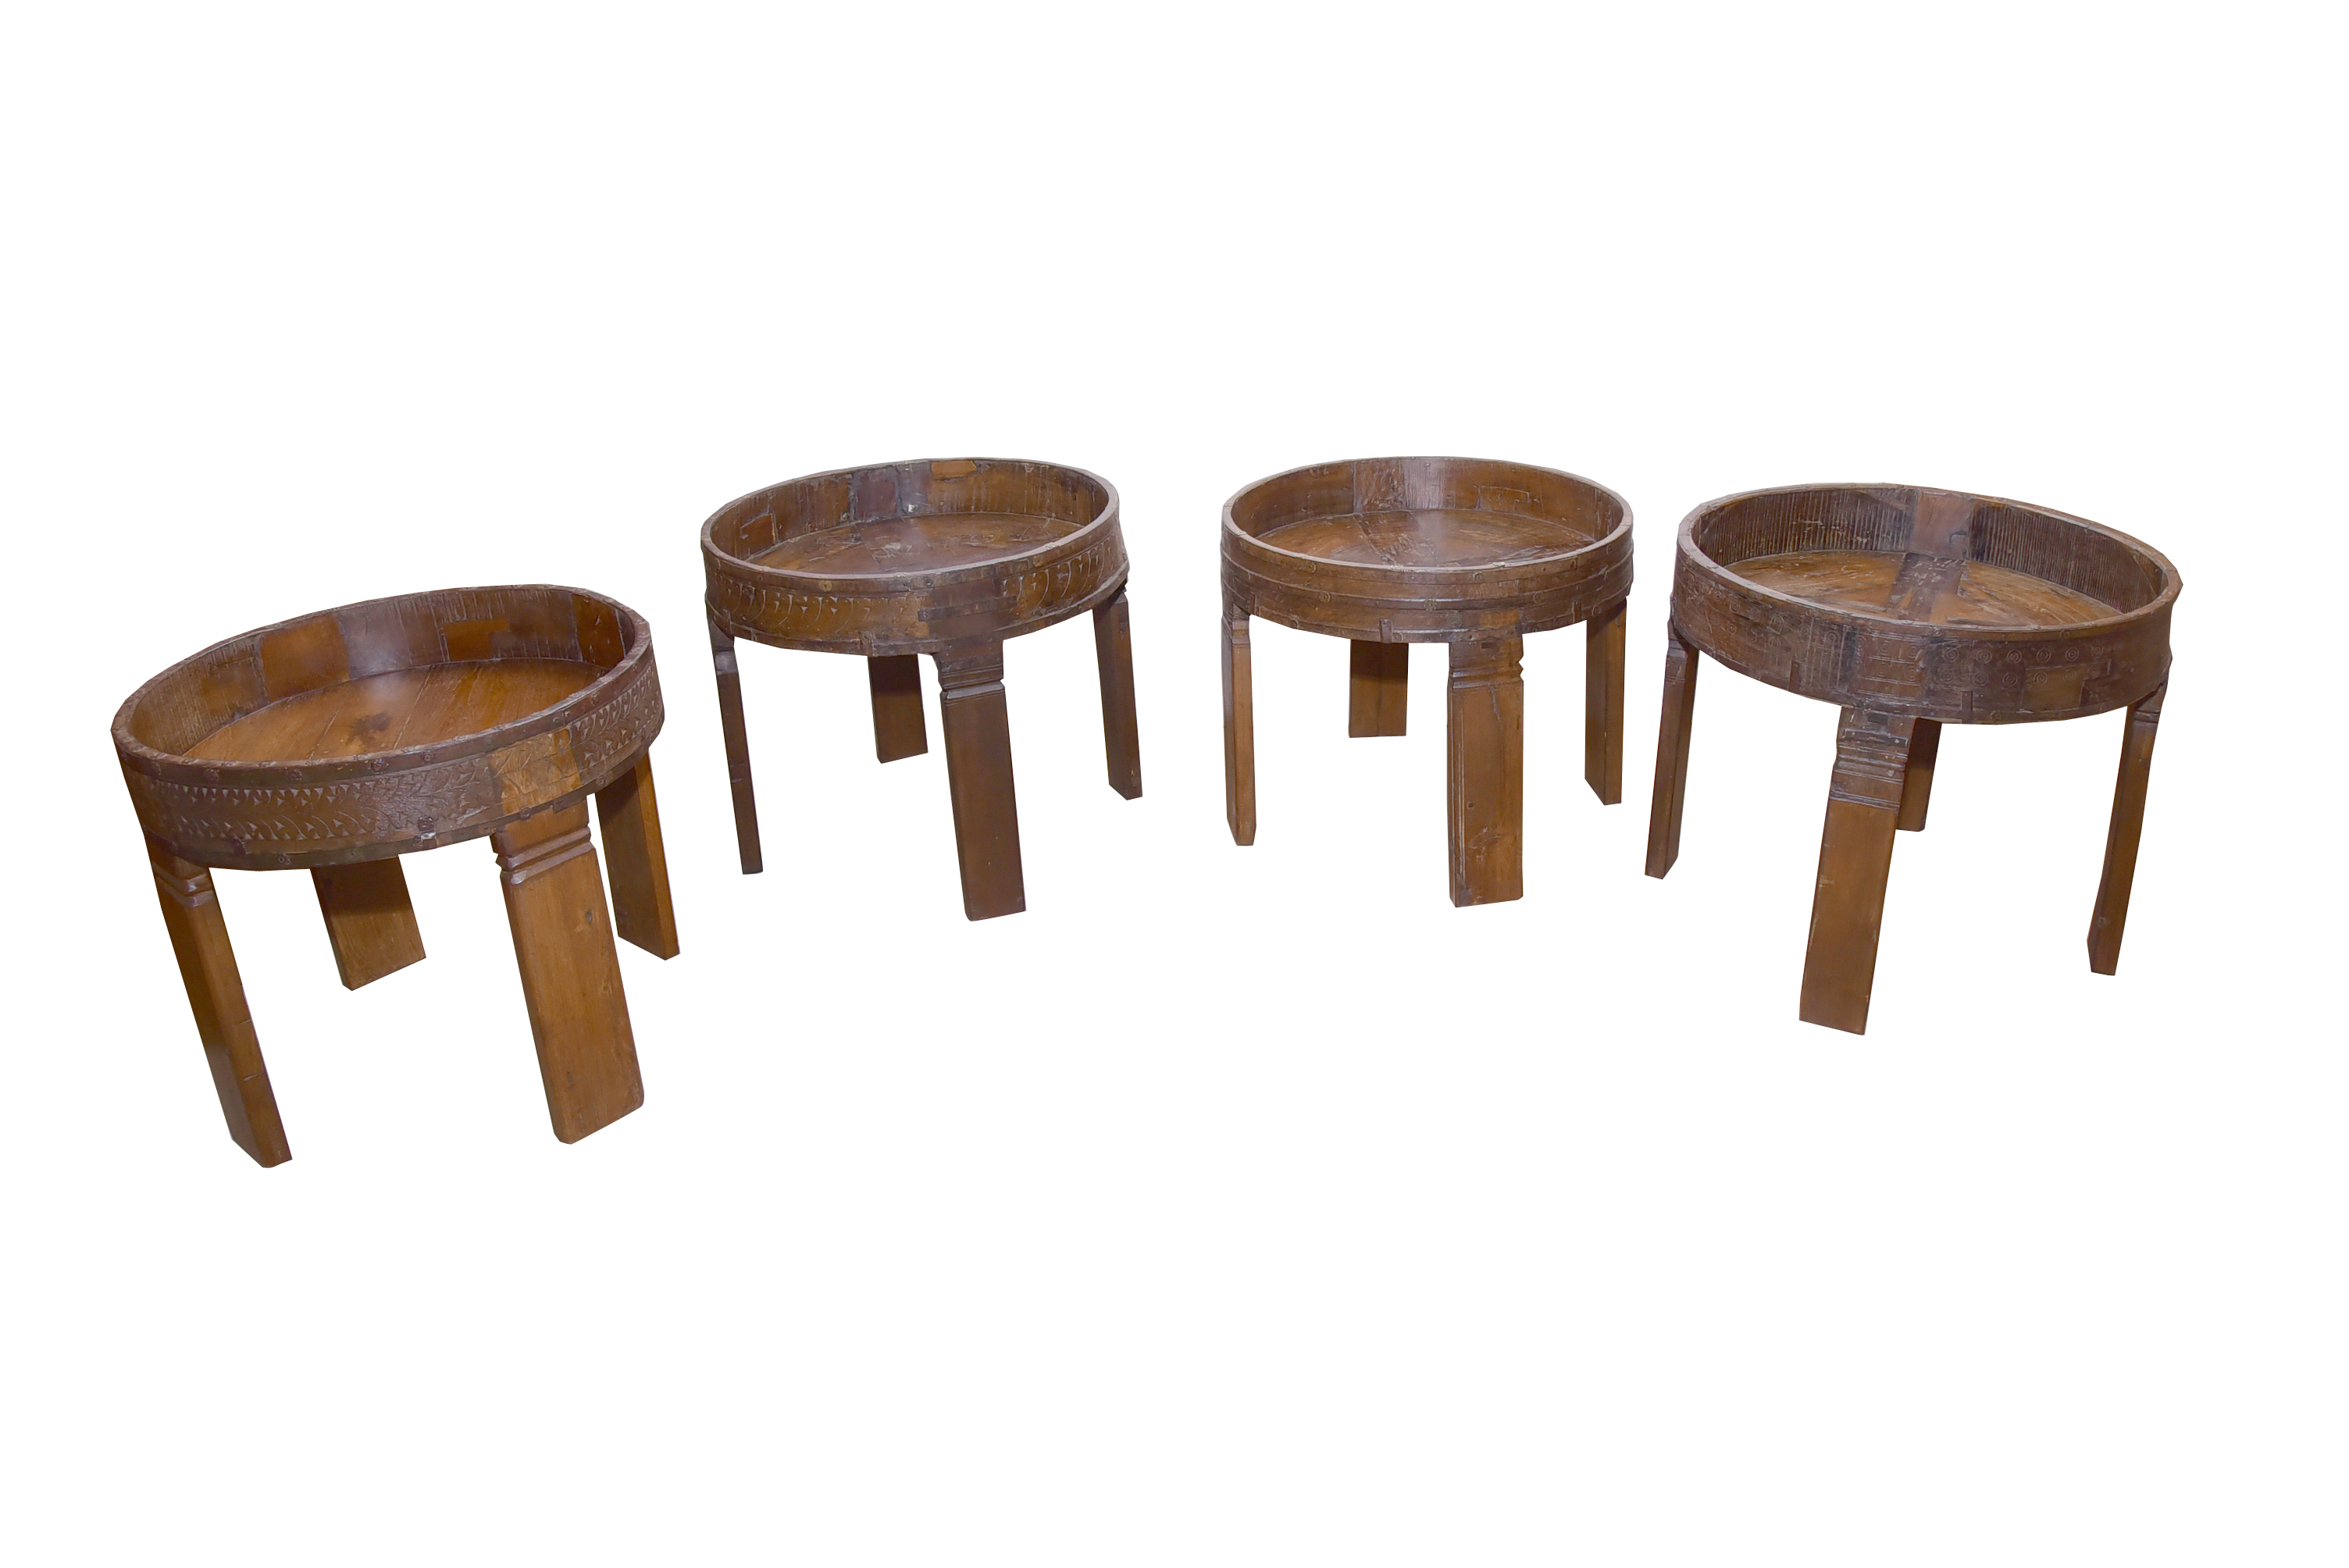 ANJO1999 4tables - 70 x 70 x 58cm